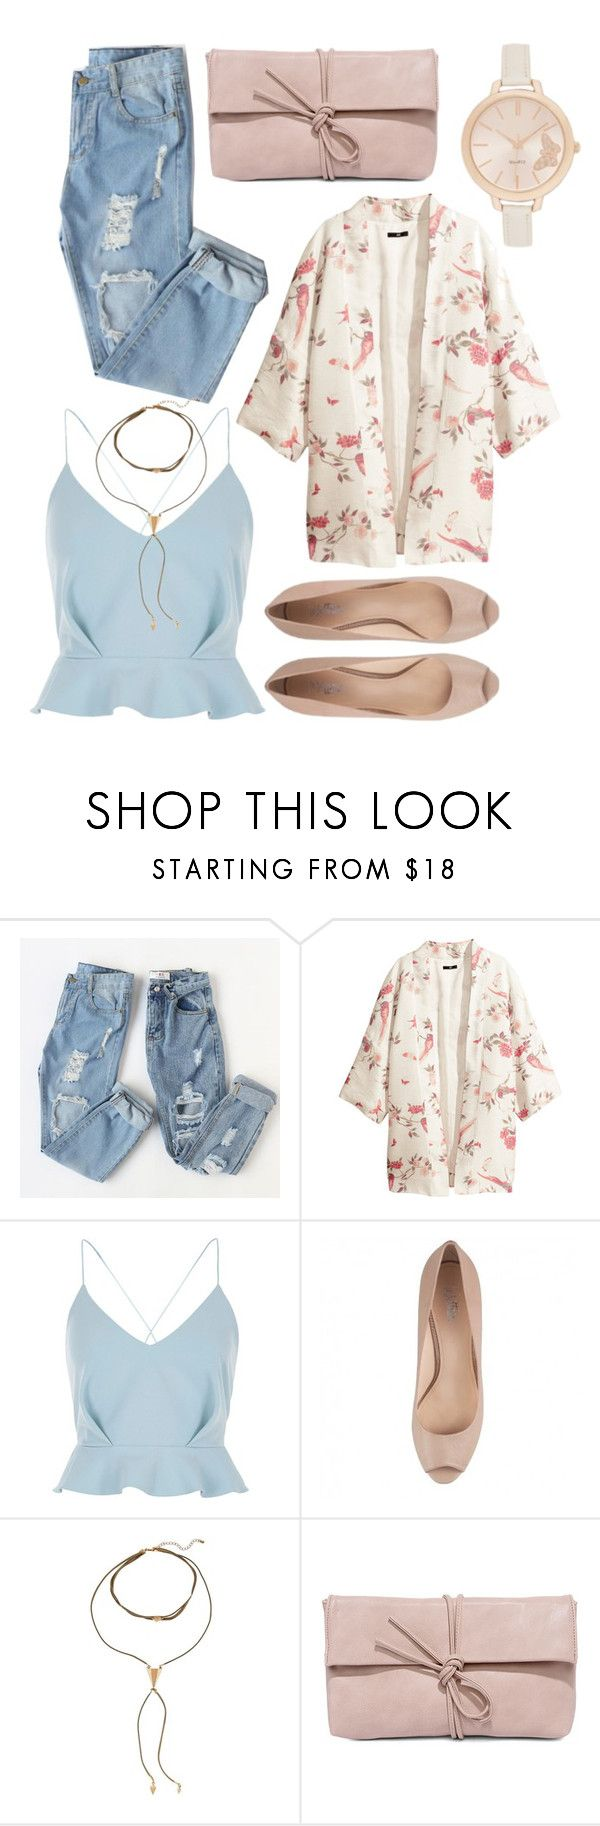 """Janet"" by goingdigi ❤ liked on Polyvore featuring H&M, River Island and LULUS"